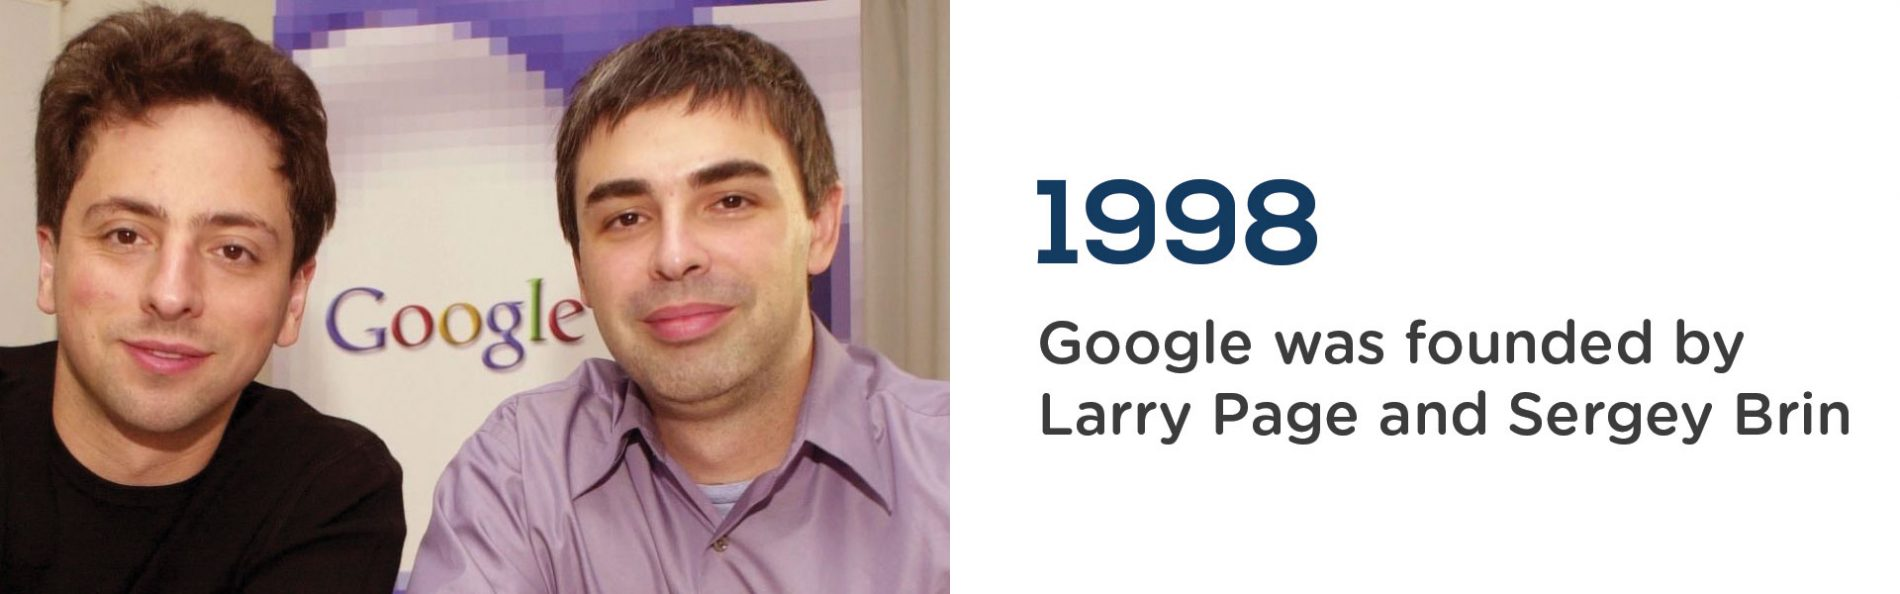 Google was founded in 1998 by Larry Page and Sergey Brin